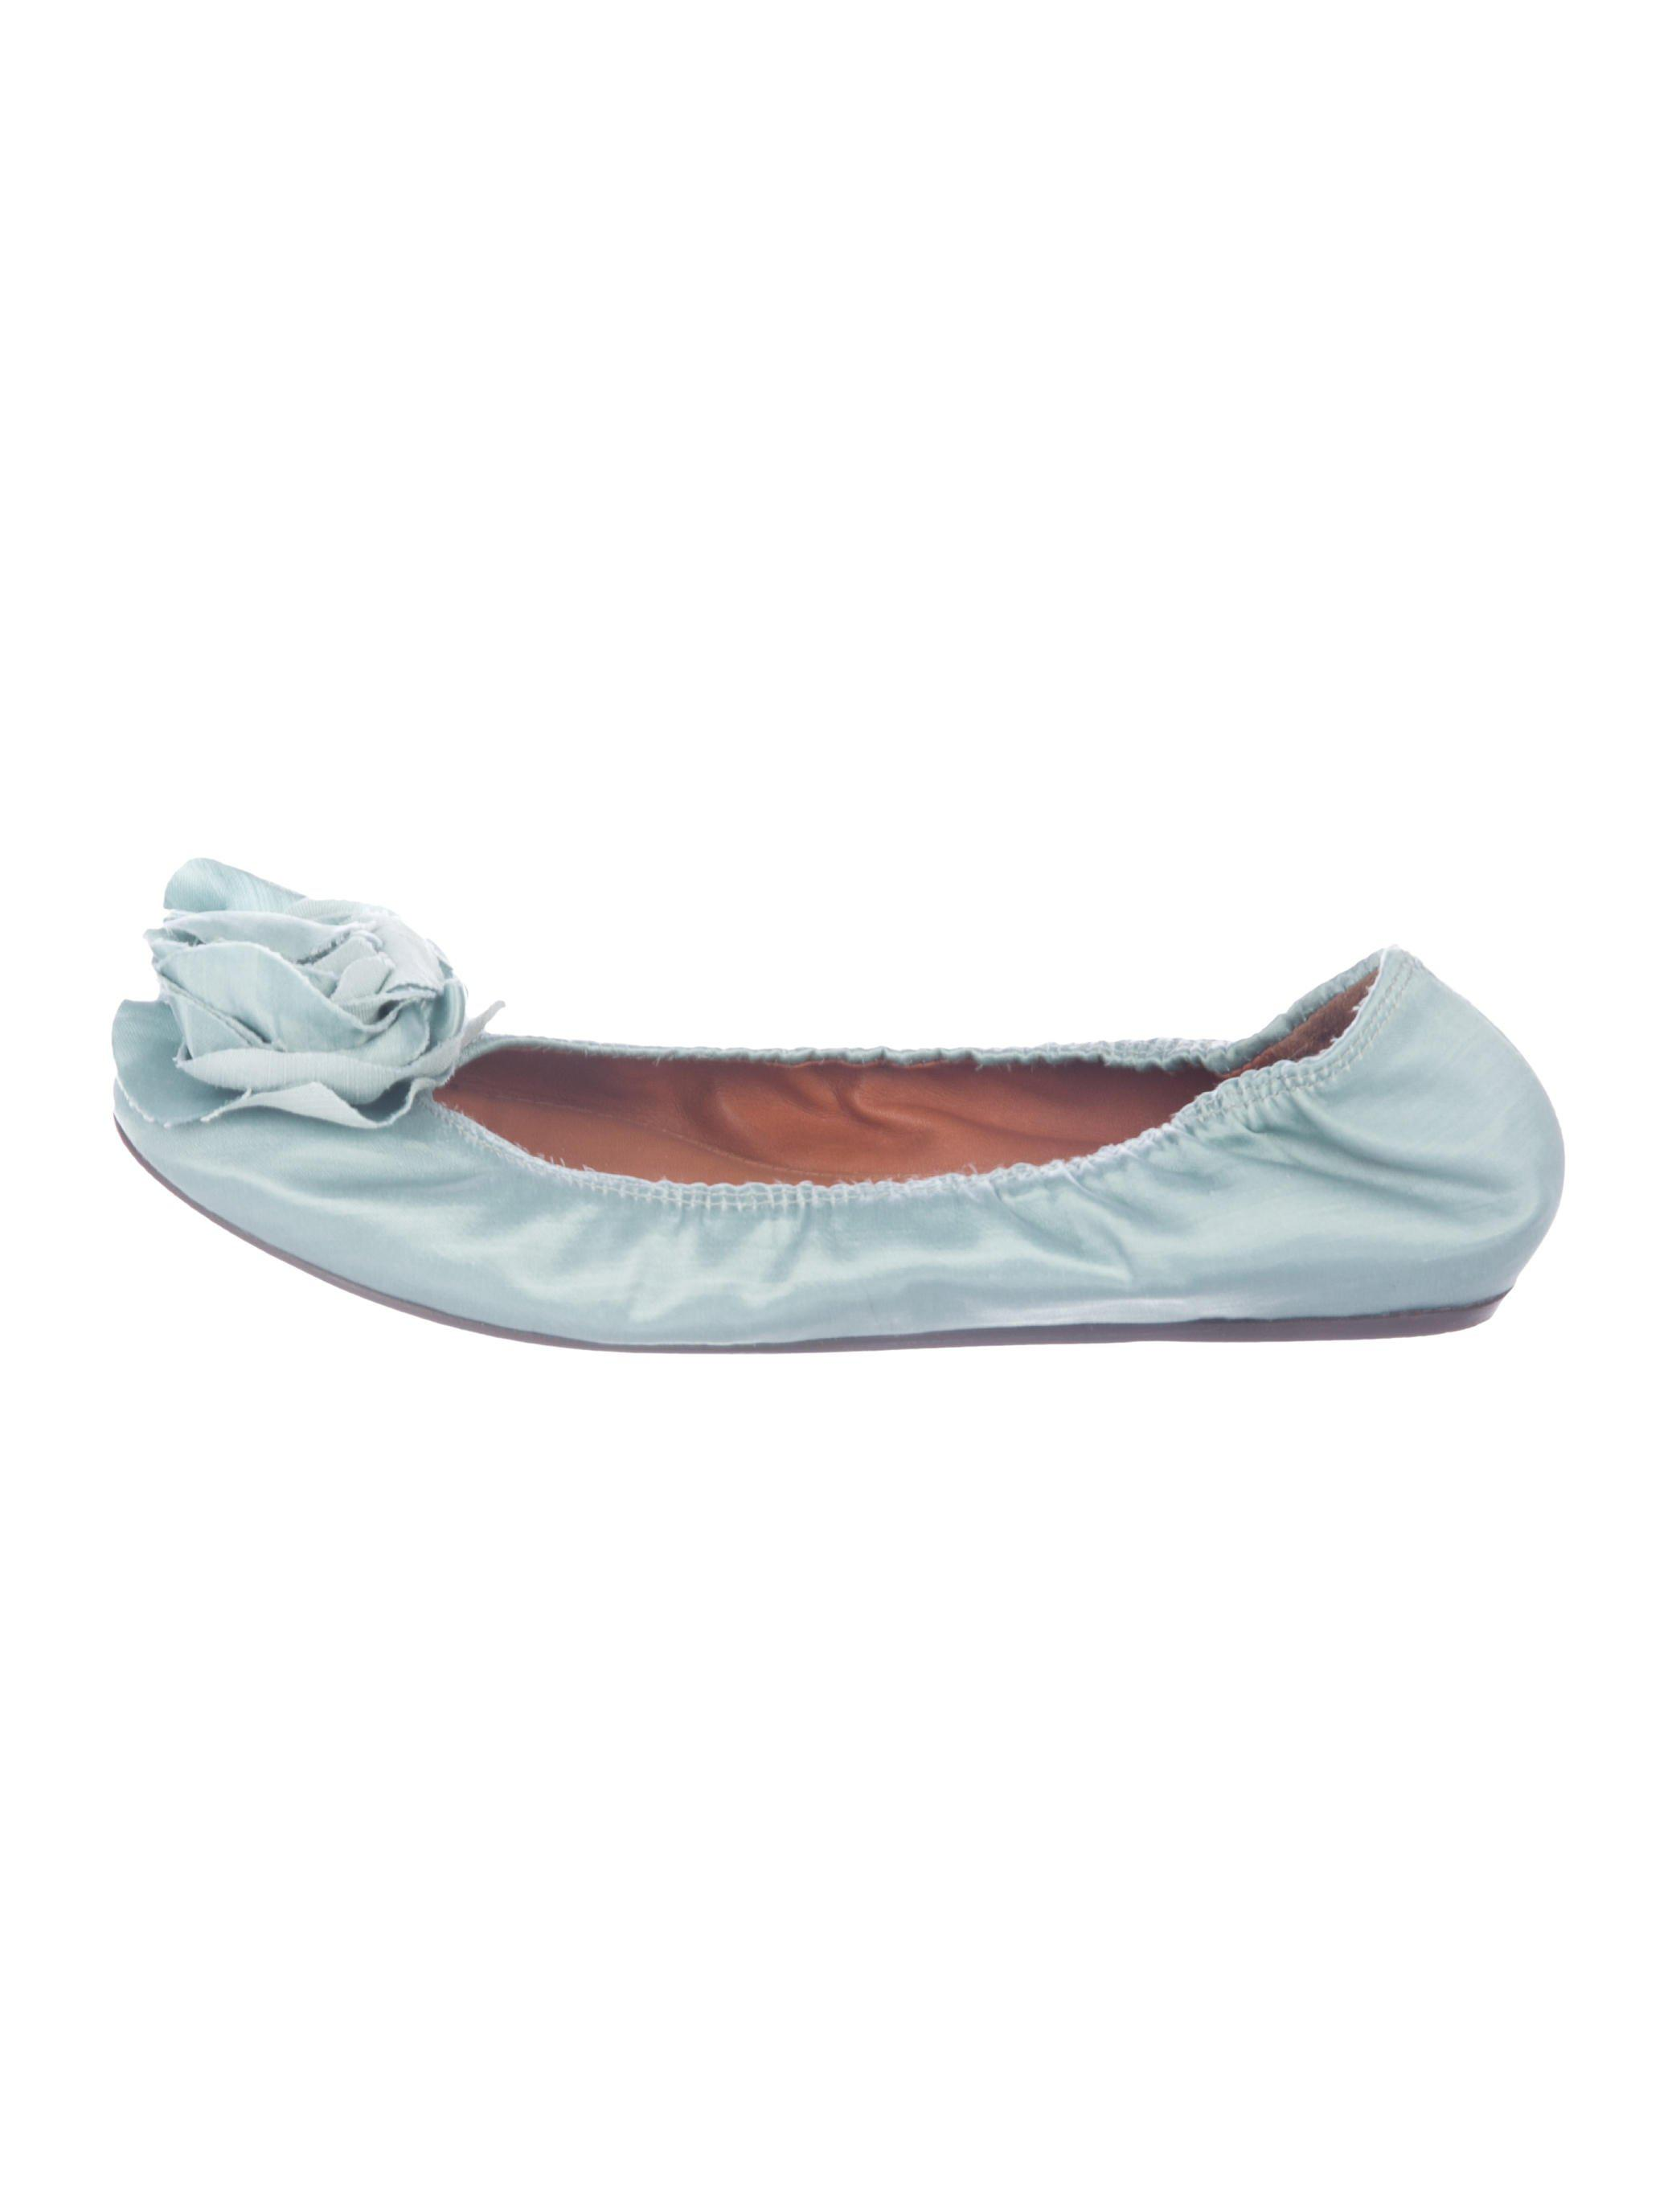 clearance best store to get Lanvin Satin Floral Flats buy cheap sast quality free shipping outlet manchester great sale cheap price good selling cheap price yqGmsg9bm